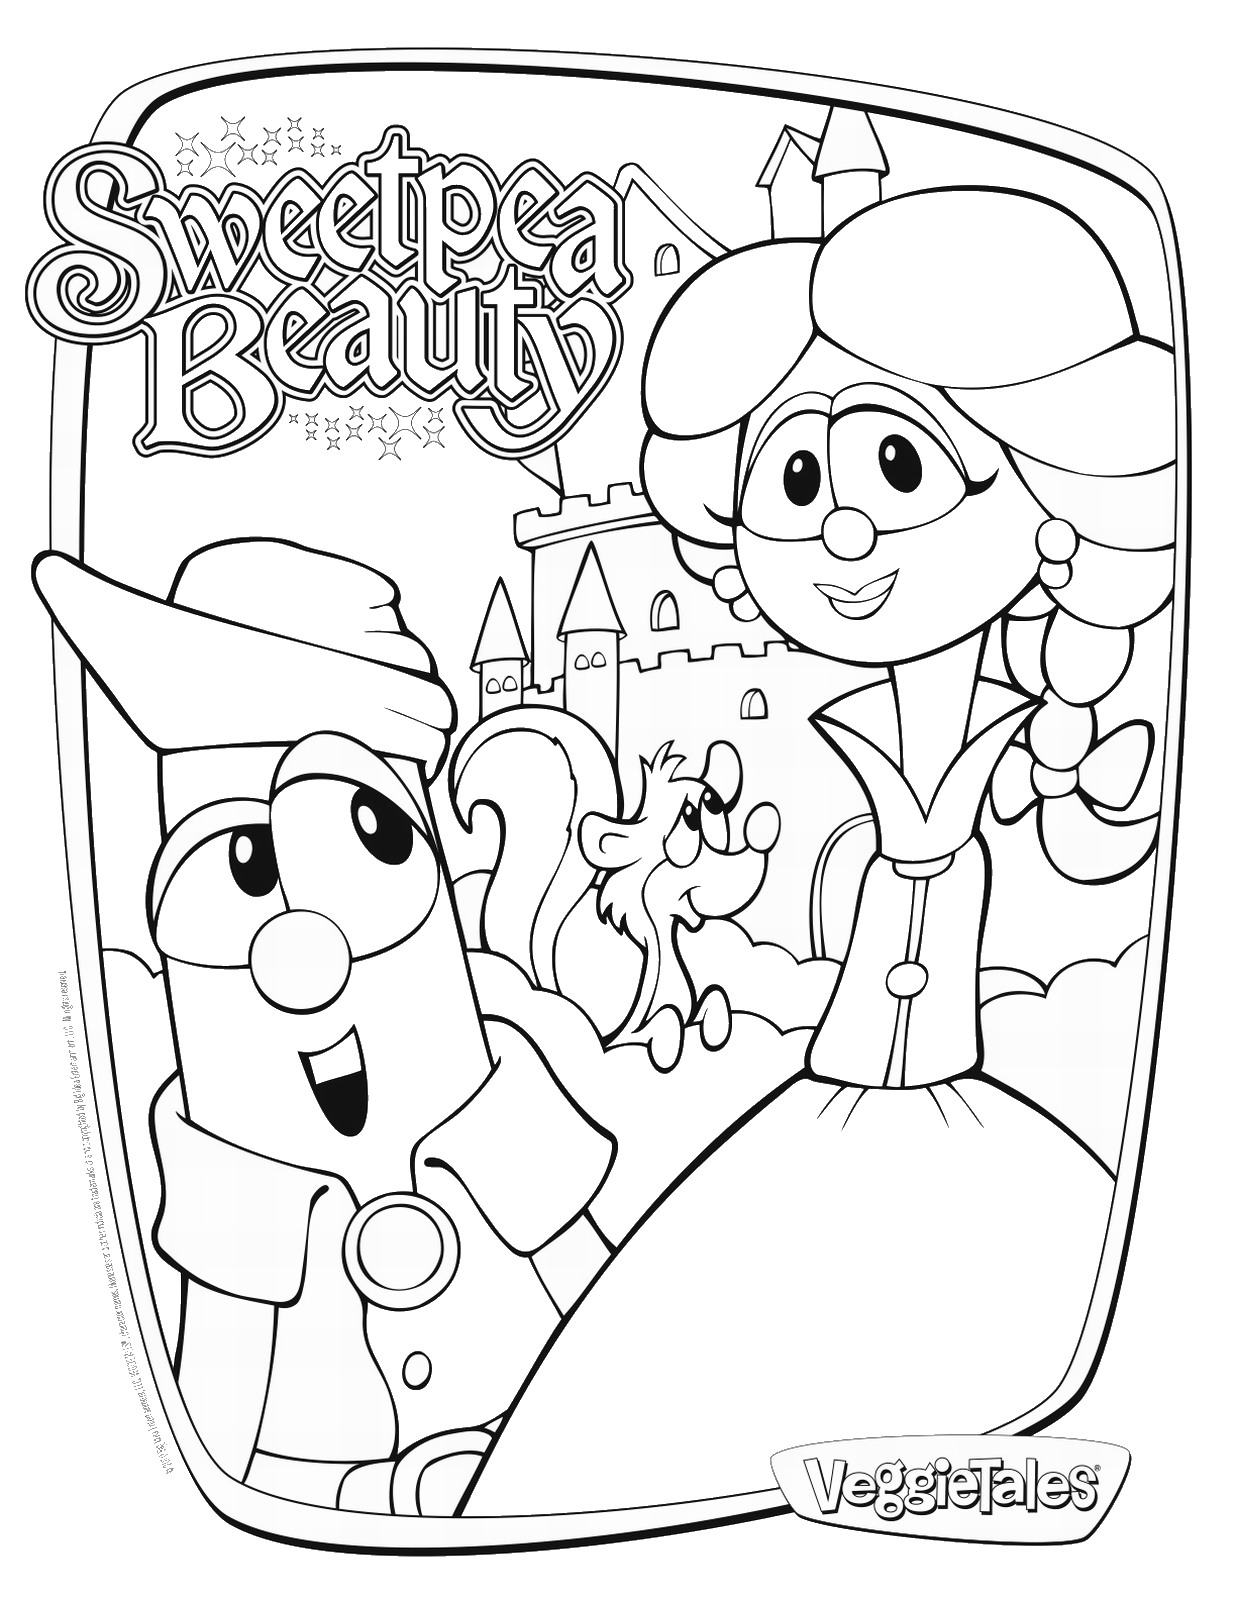 veggie tales coloring free printable veggie tales coloring pages for kids veggie coloring tales